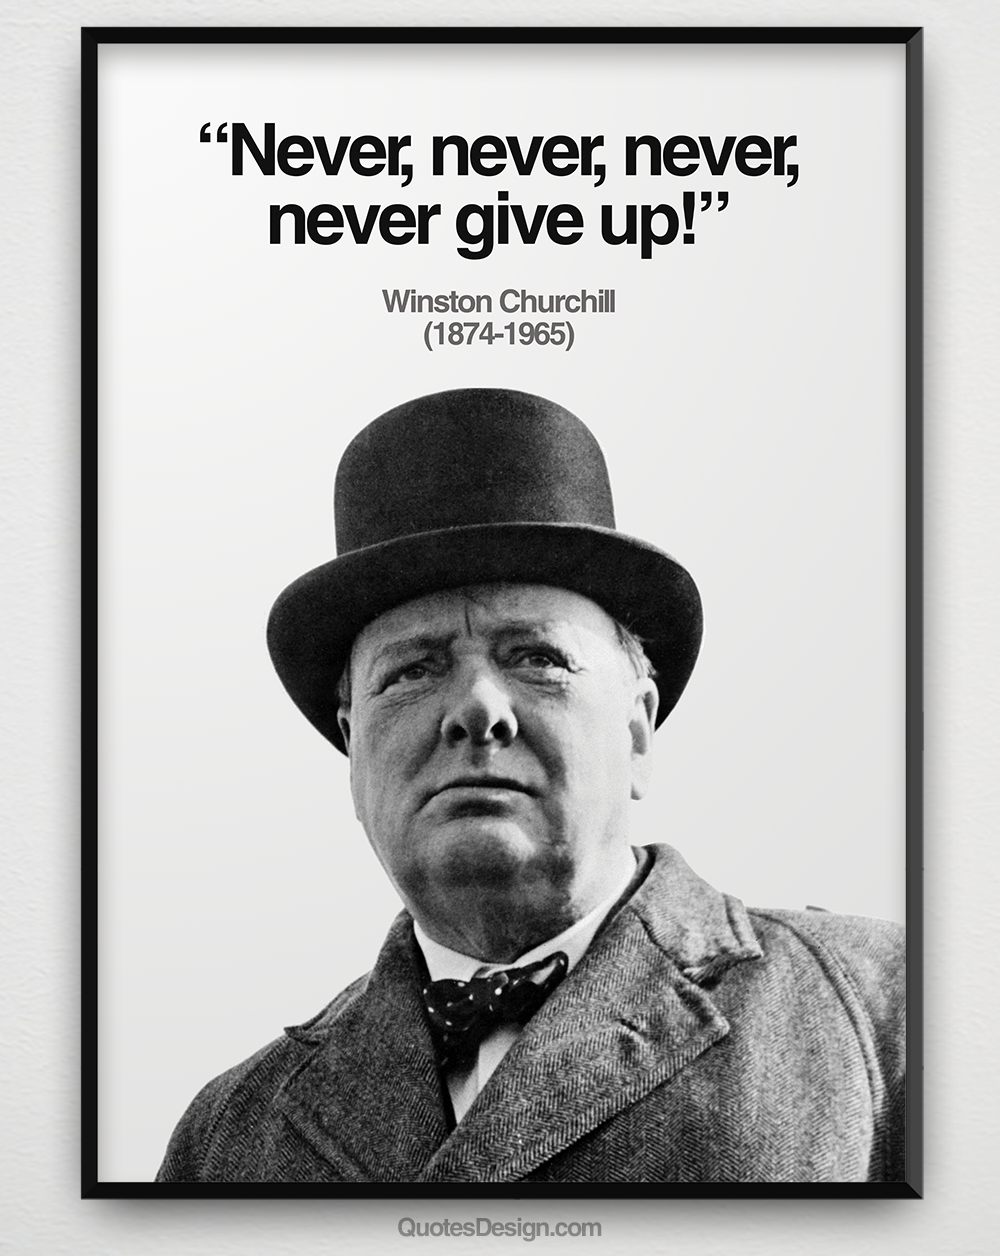 "Winston Churchill Love Quotes Never Never Never Give Up"" Winston Churchill 18741965"